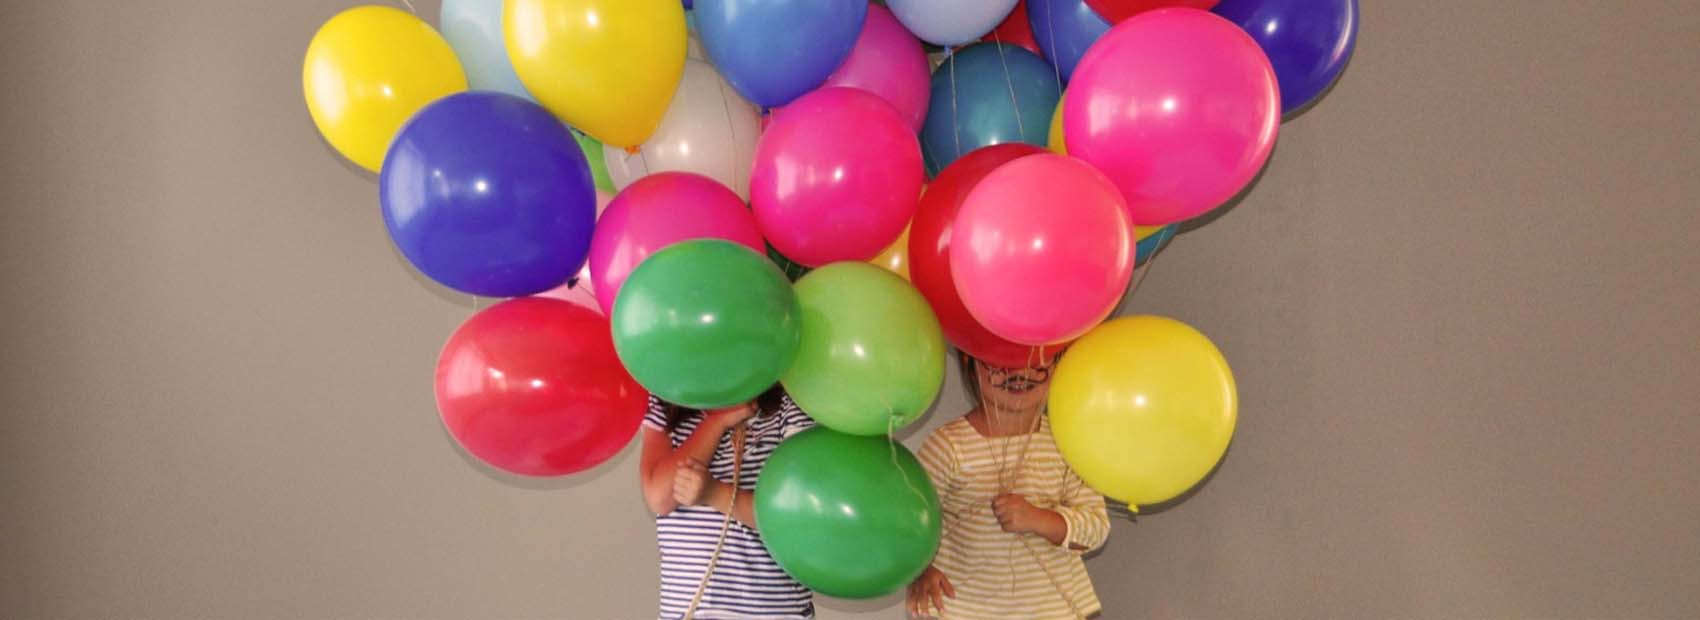 header_home_ballon.jpg